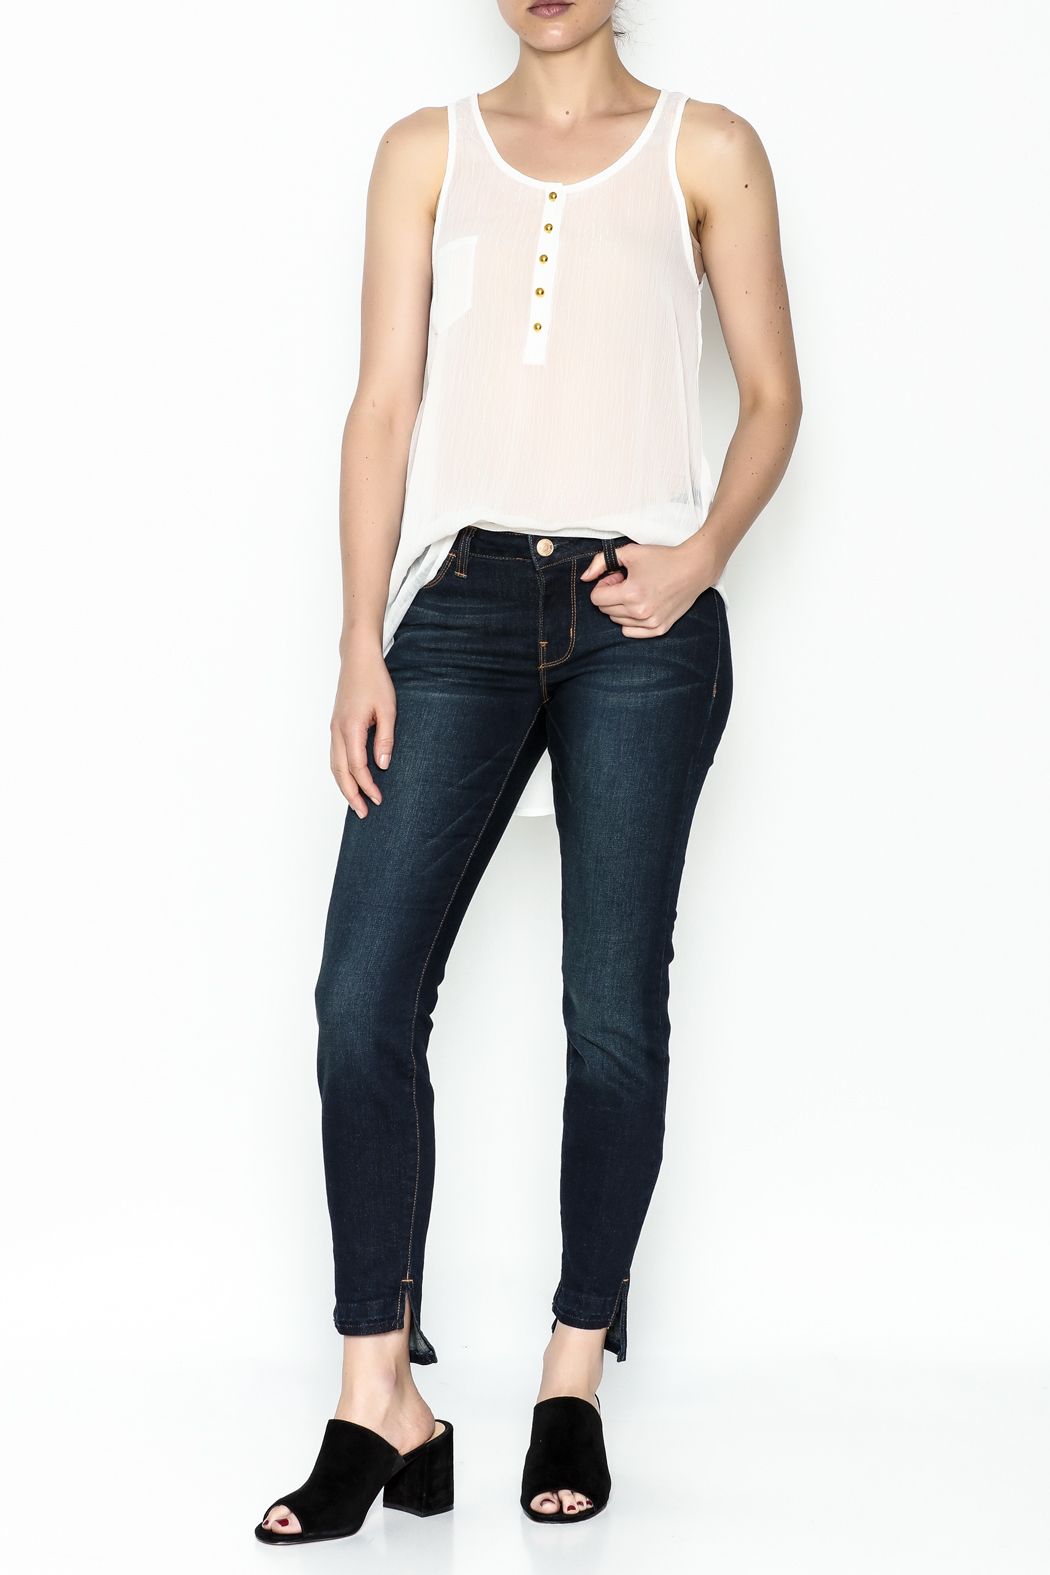 Karlie Lurex Pocket Tank - Side Cropped Image